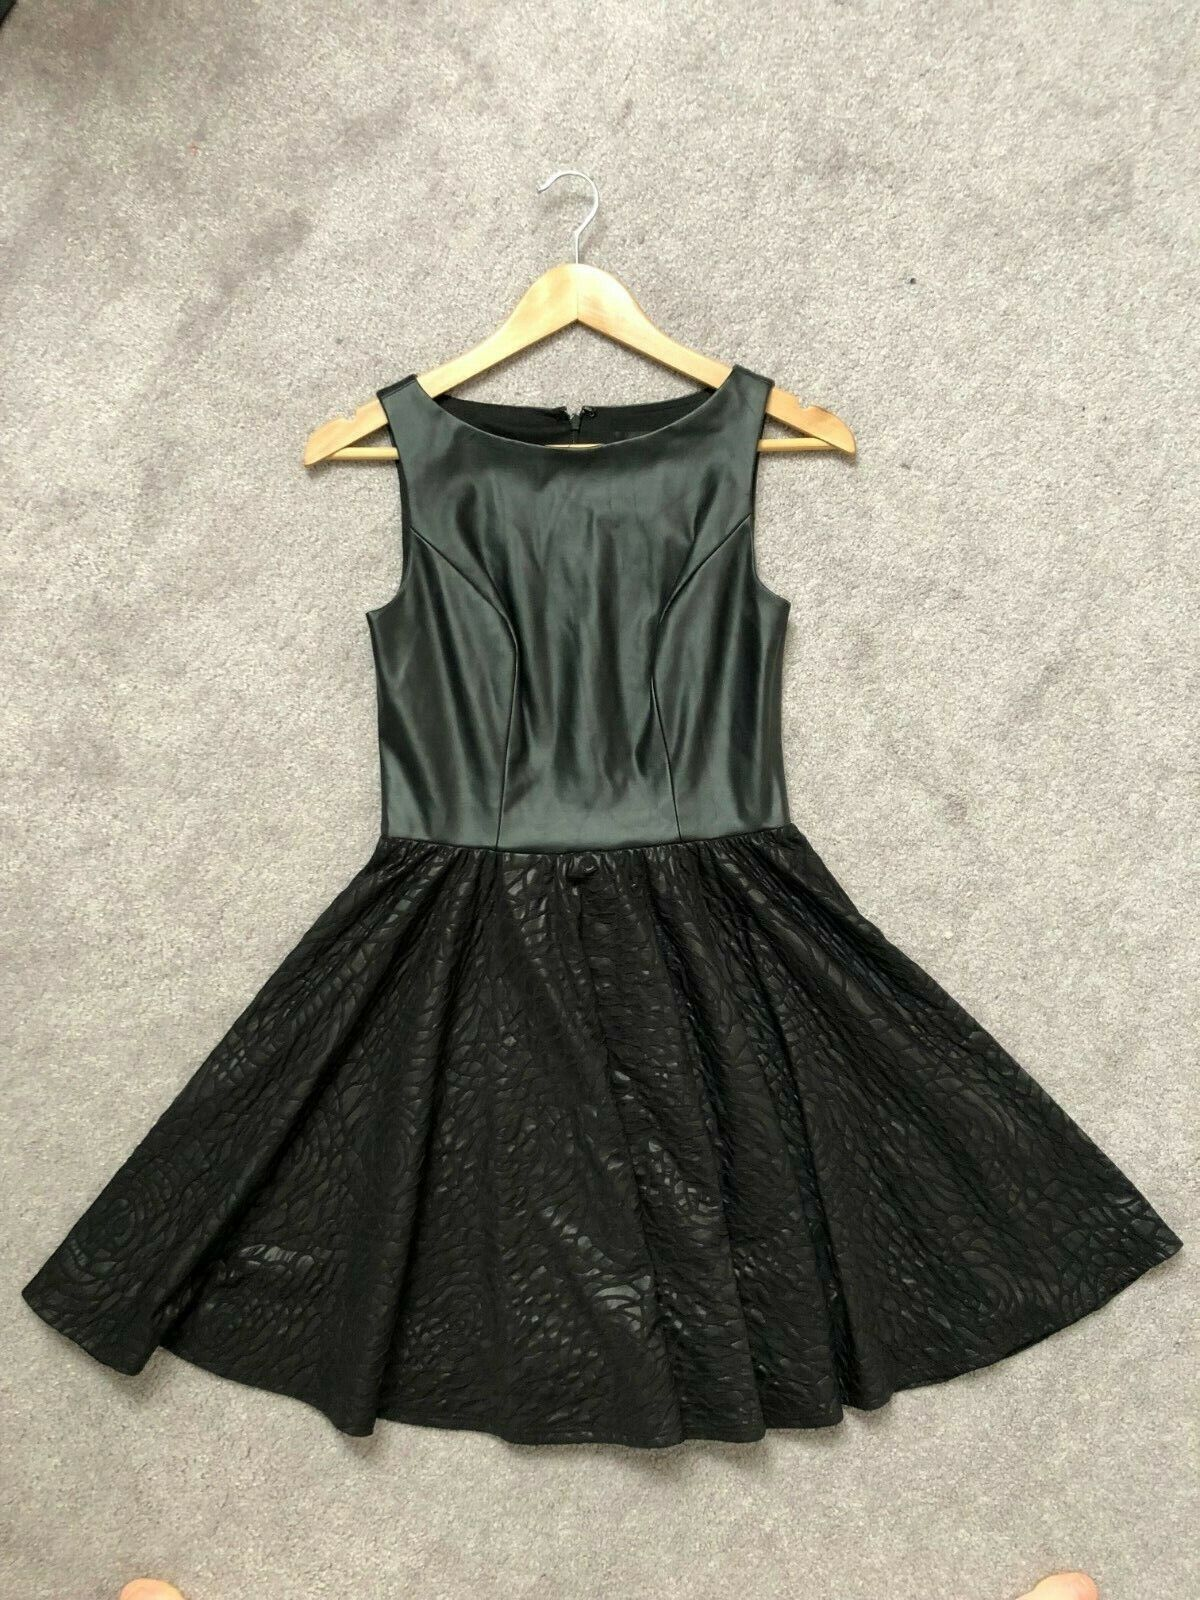 ALEXIA ADMOR Little schwarz Dress Faux Leather A-line Goth Punk Rosa Floral  sz XS